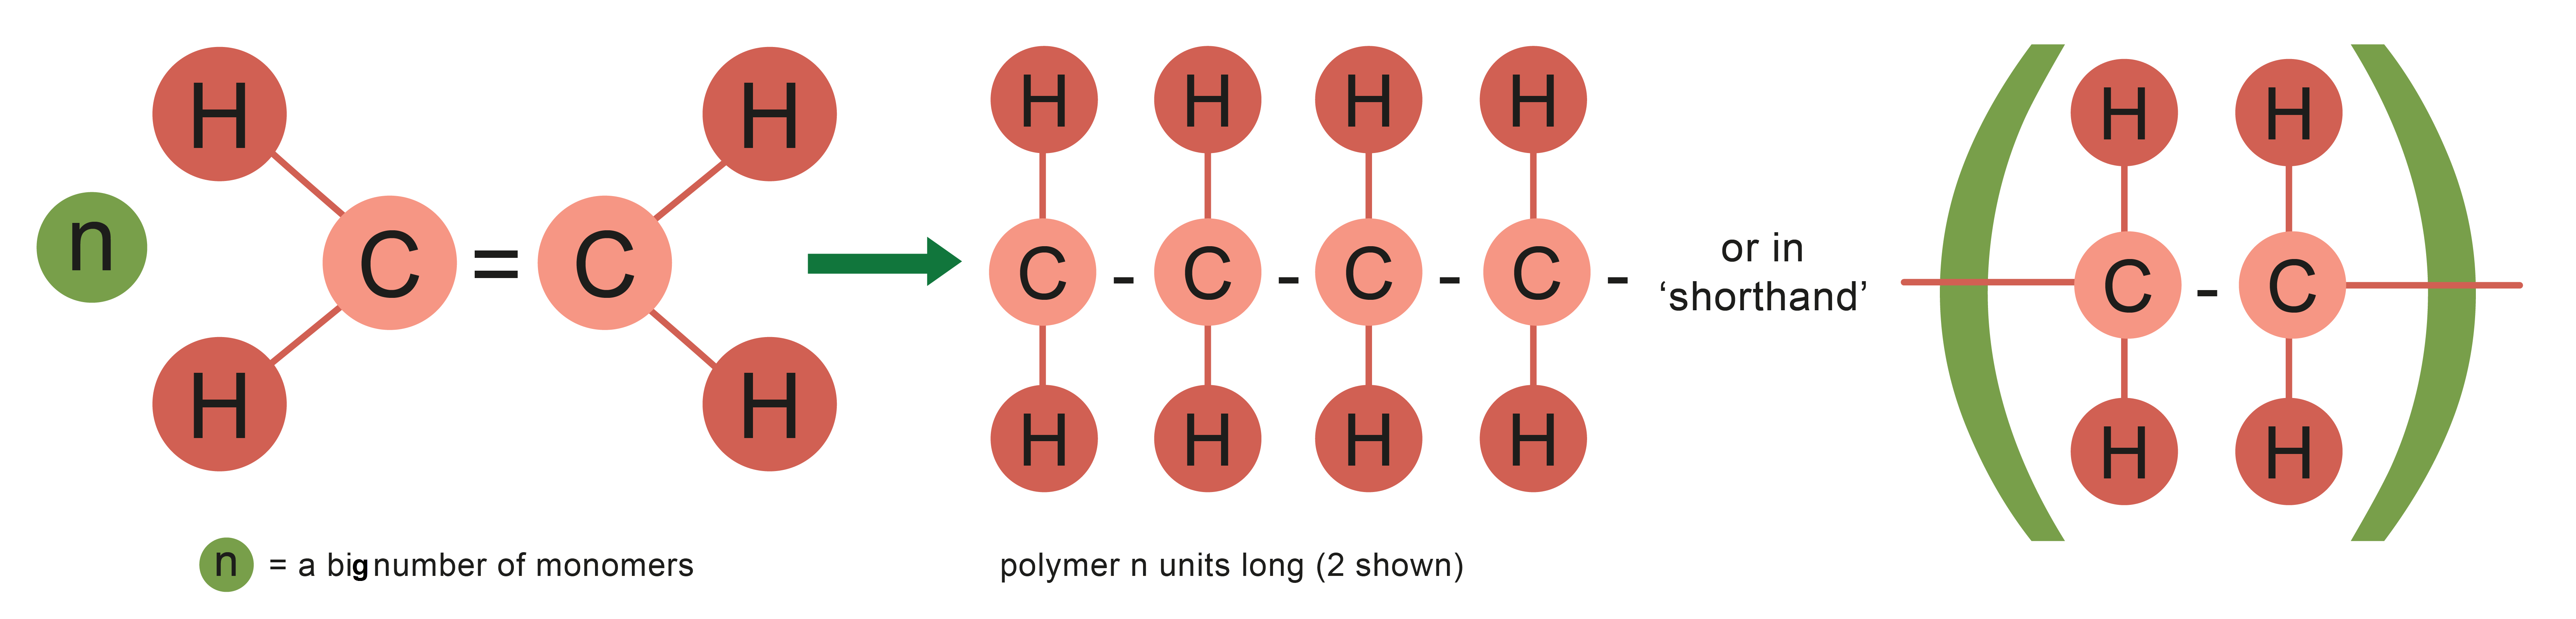 Polymers And Their Uses